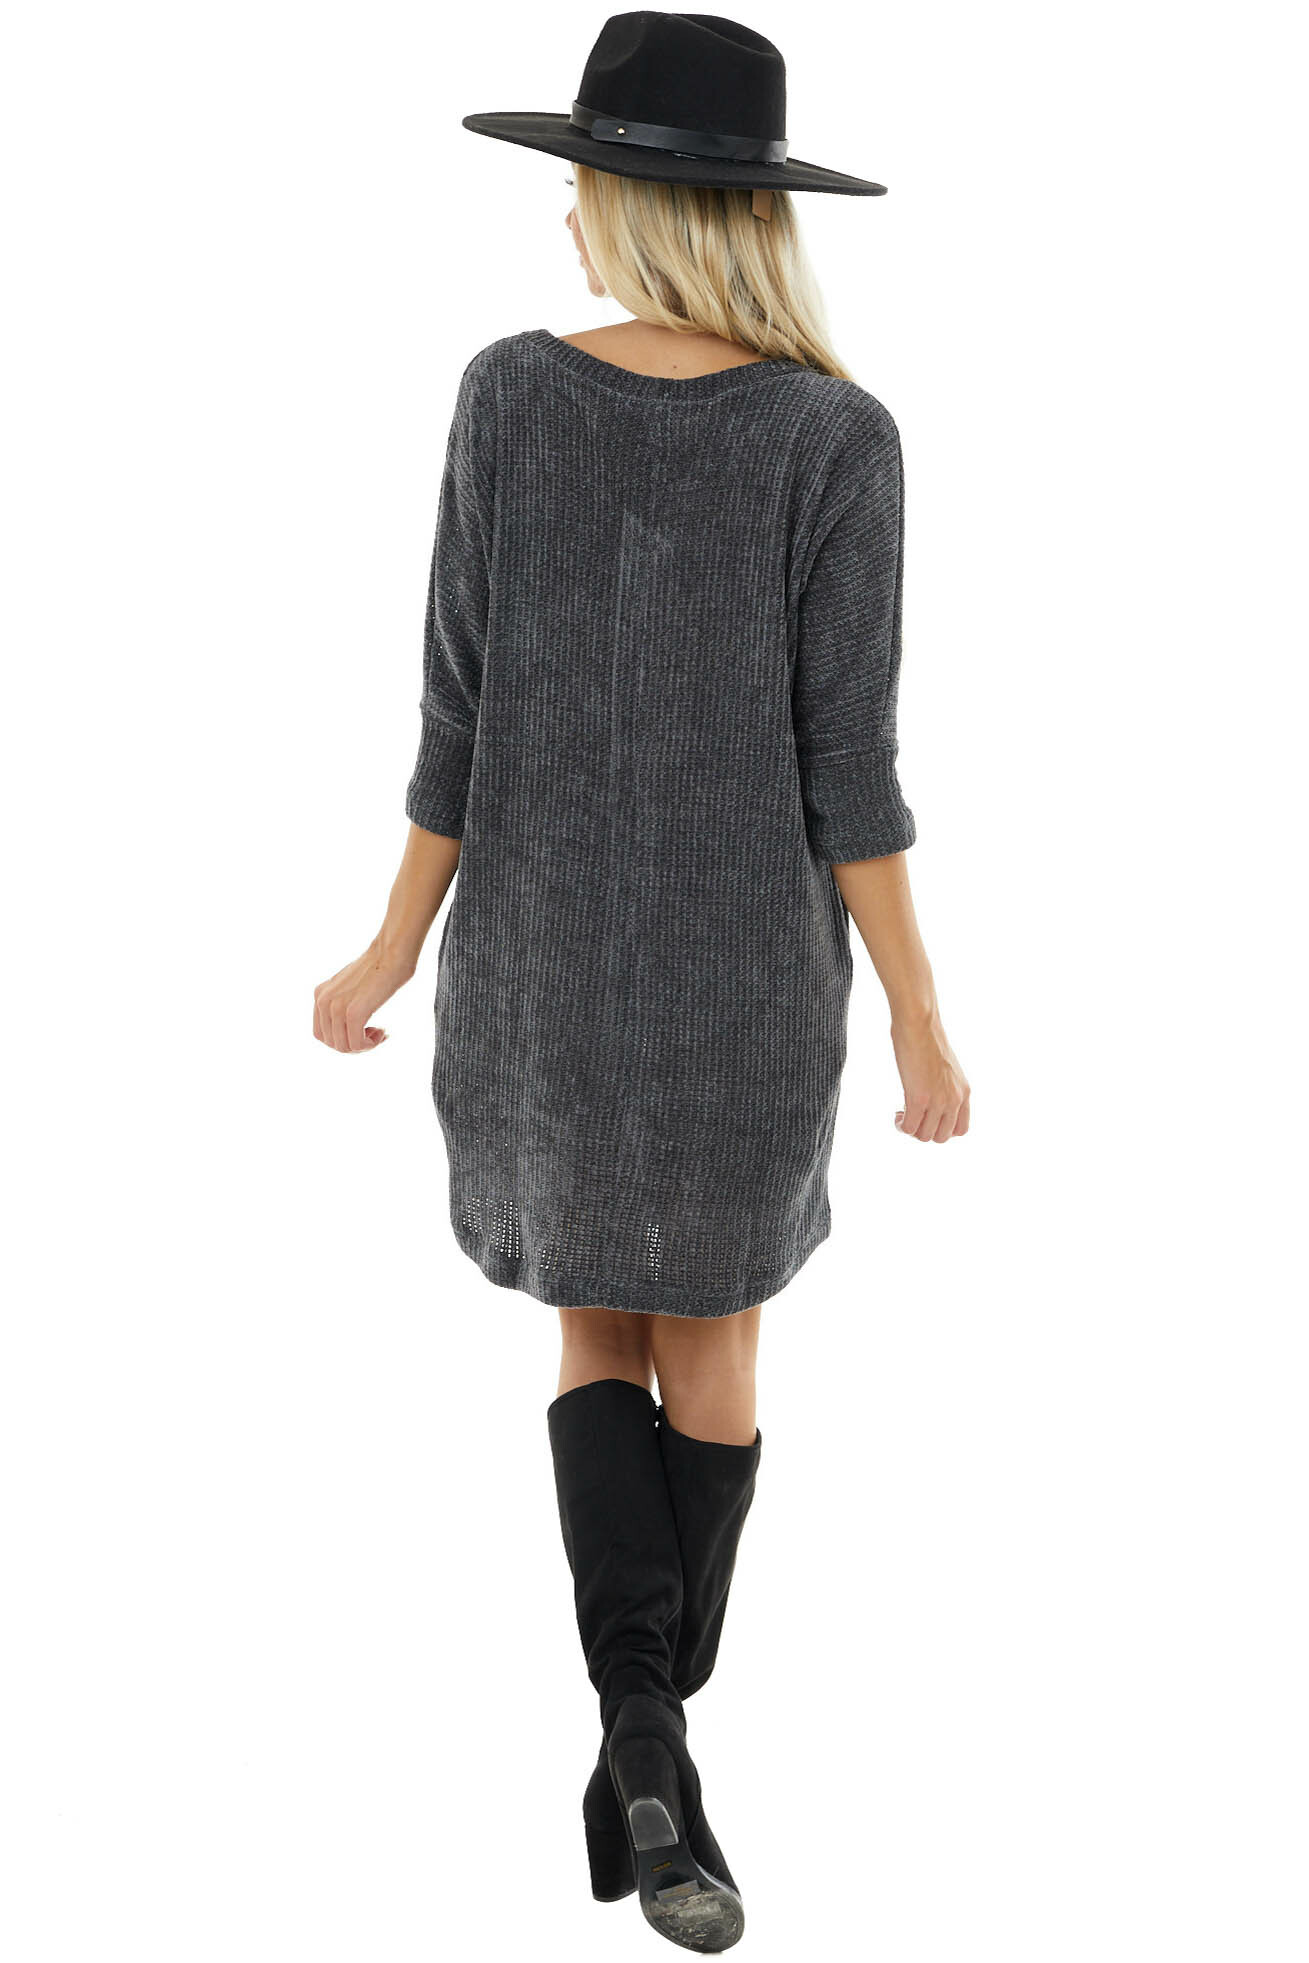 Charcoal Chenille Knit Sweater Dress with 3/4 Dolman Sleeves